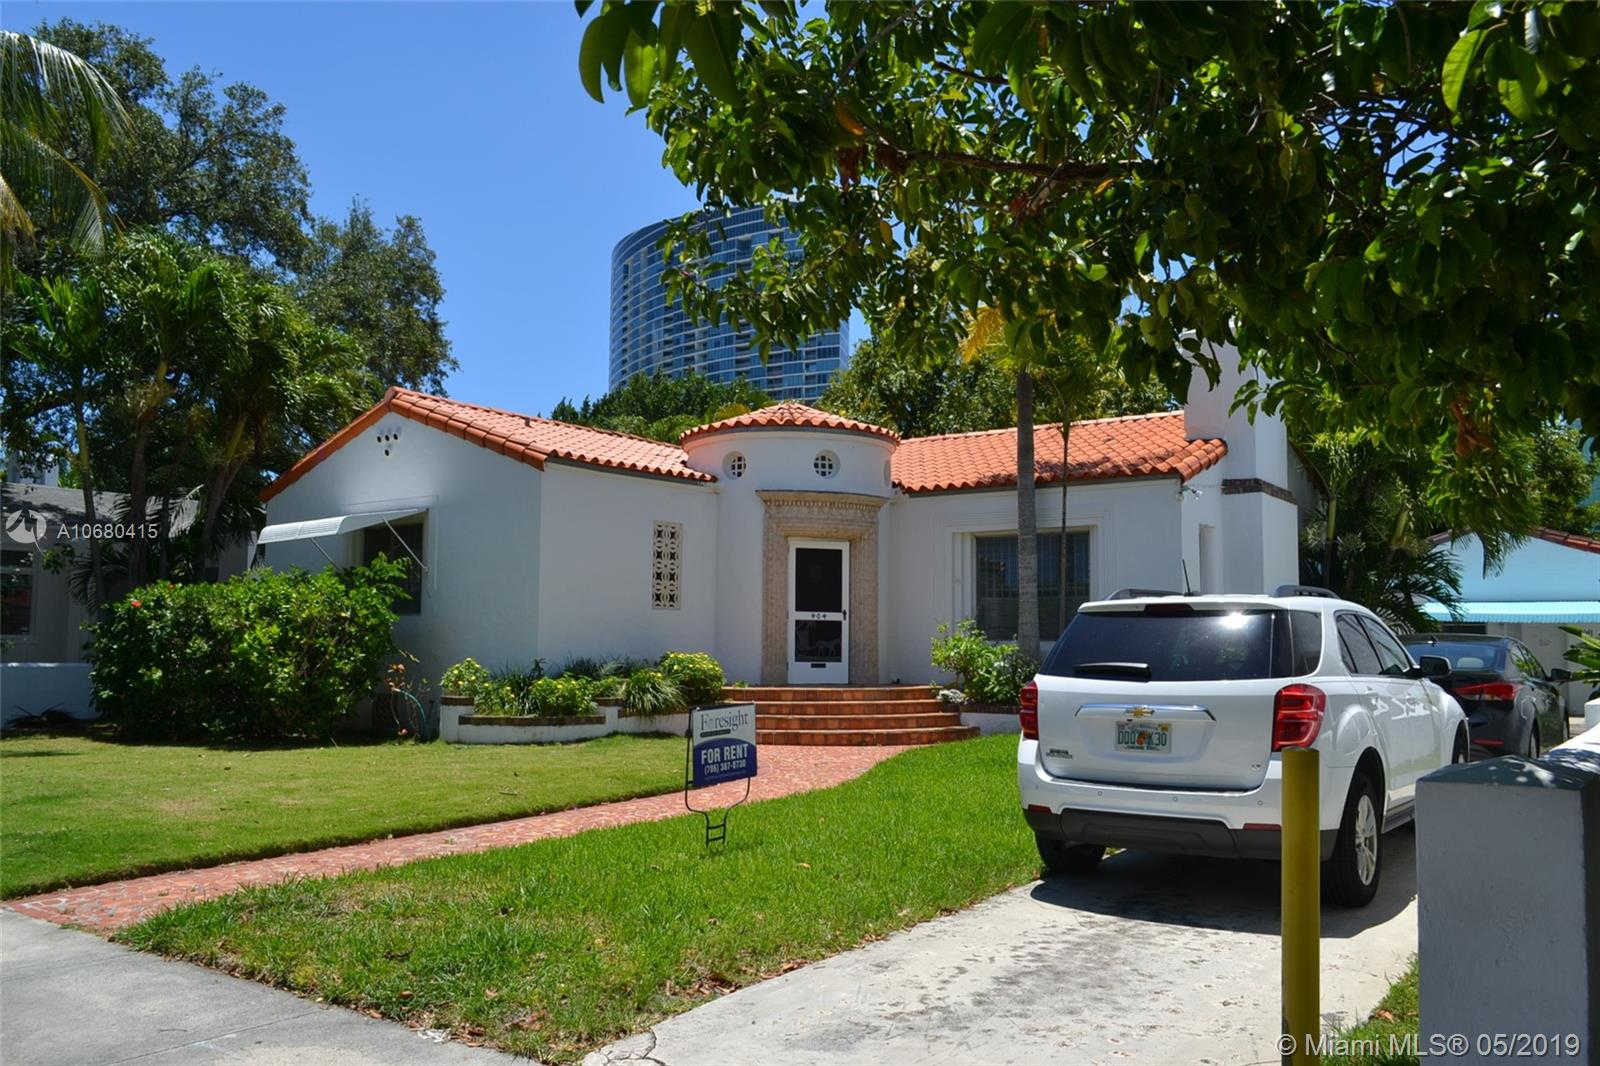 404 NE 39th St, Miami, FL 33137 now has a new price of $2,650!